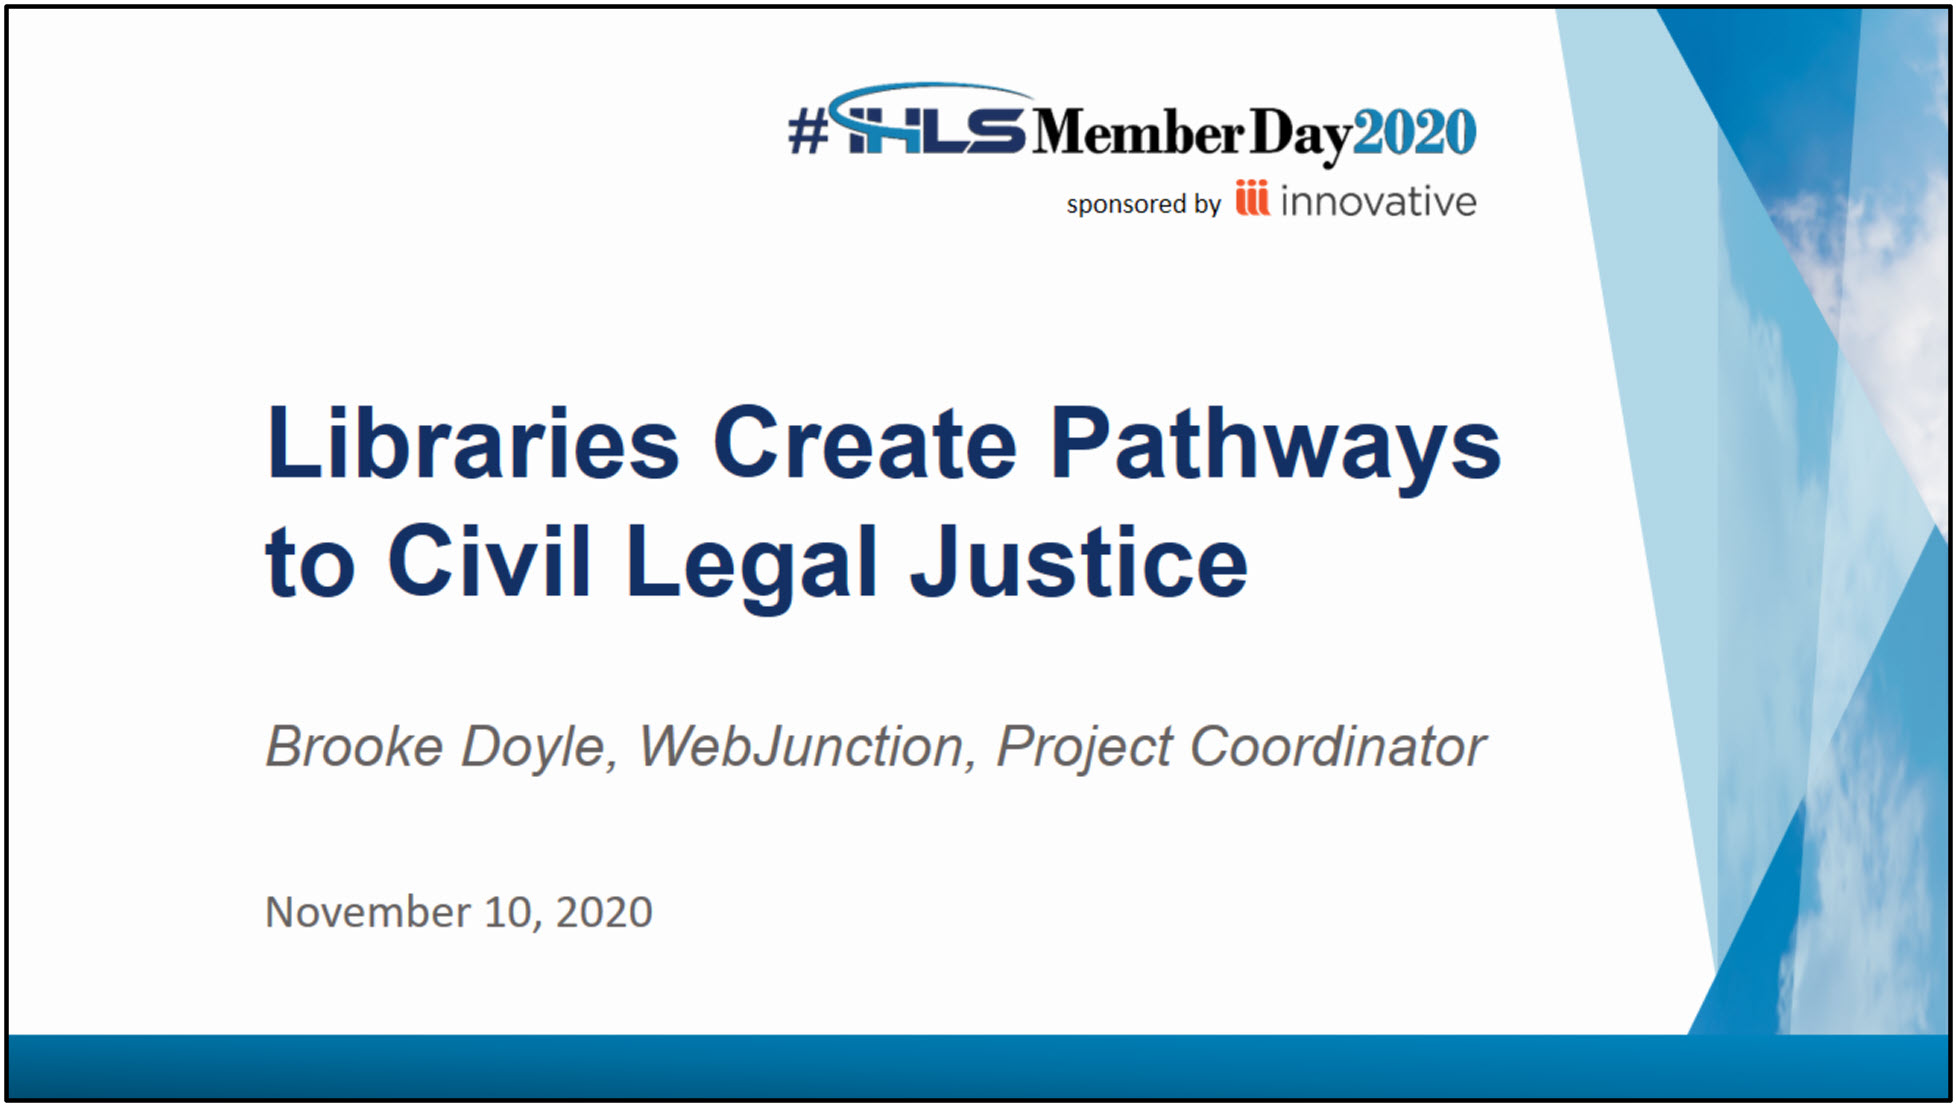 Libraries Create Pathways to Civil Legal Justice